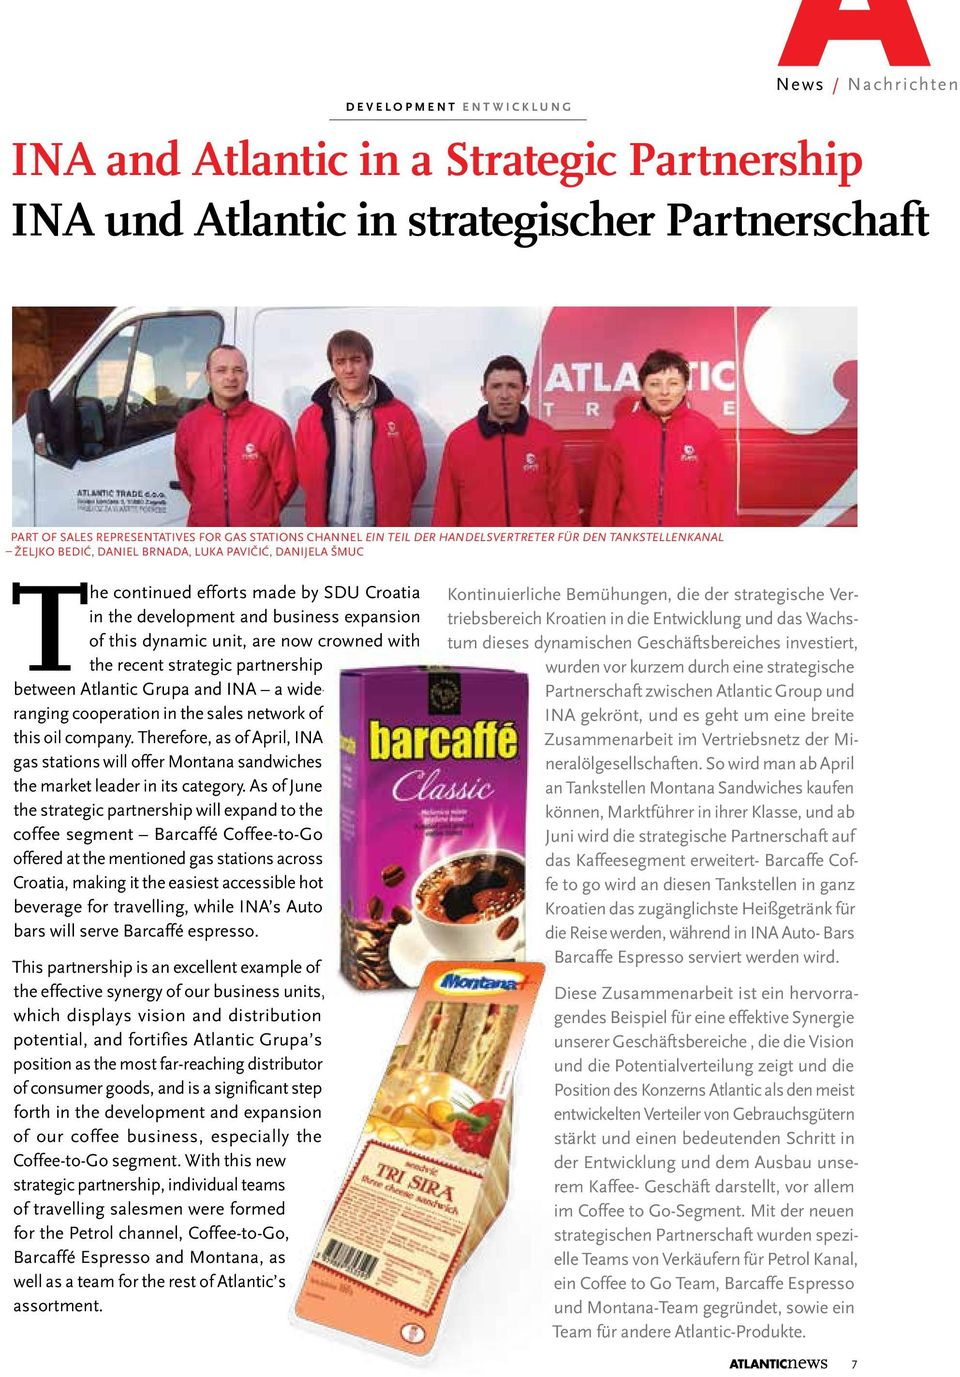 dynamic unit, are now crowned with the recent strategic partnership between Atlantic Grupa and INA a wideranging cooperation in the sales network of this oil company.